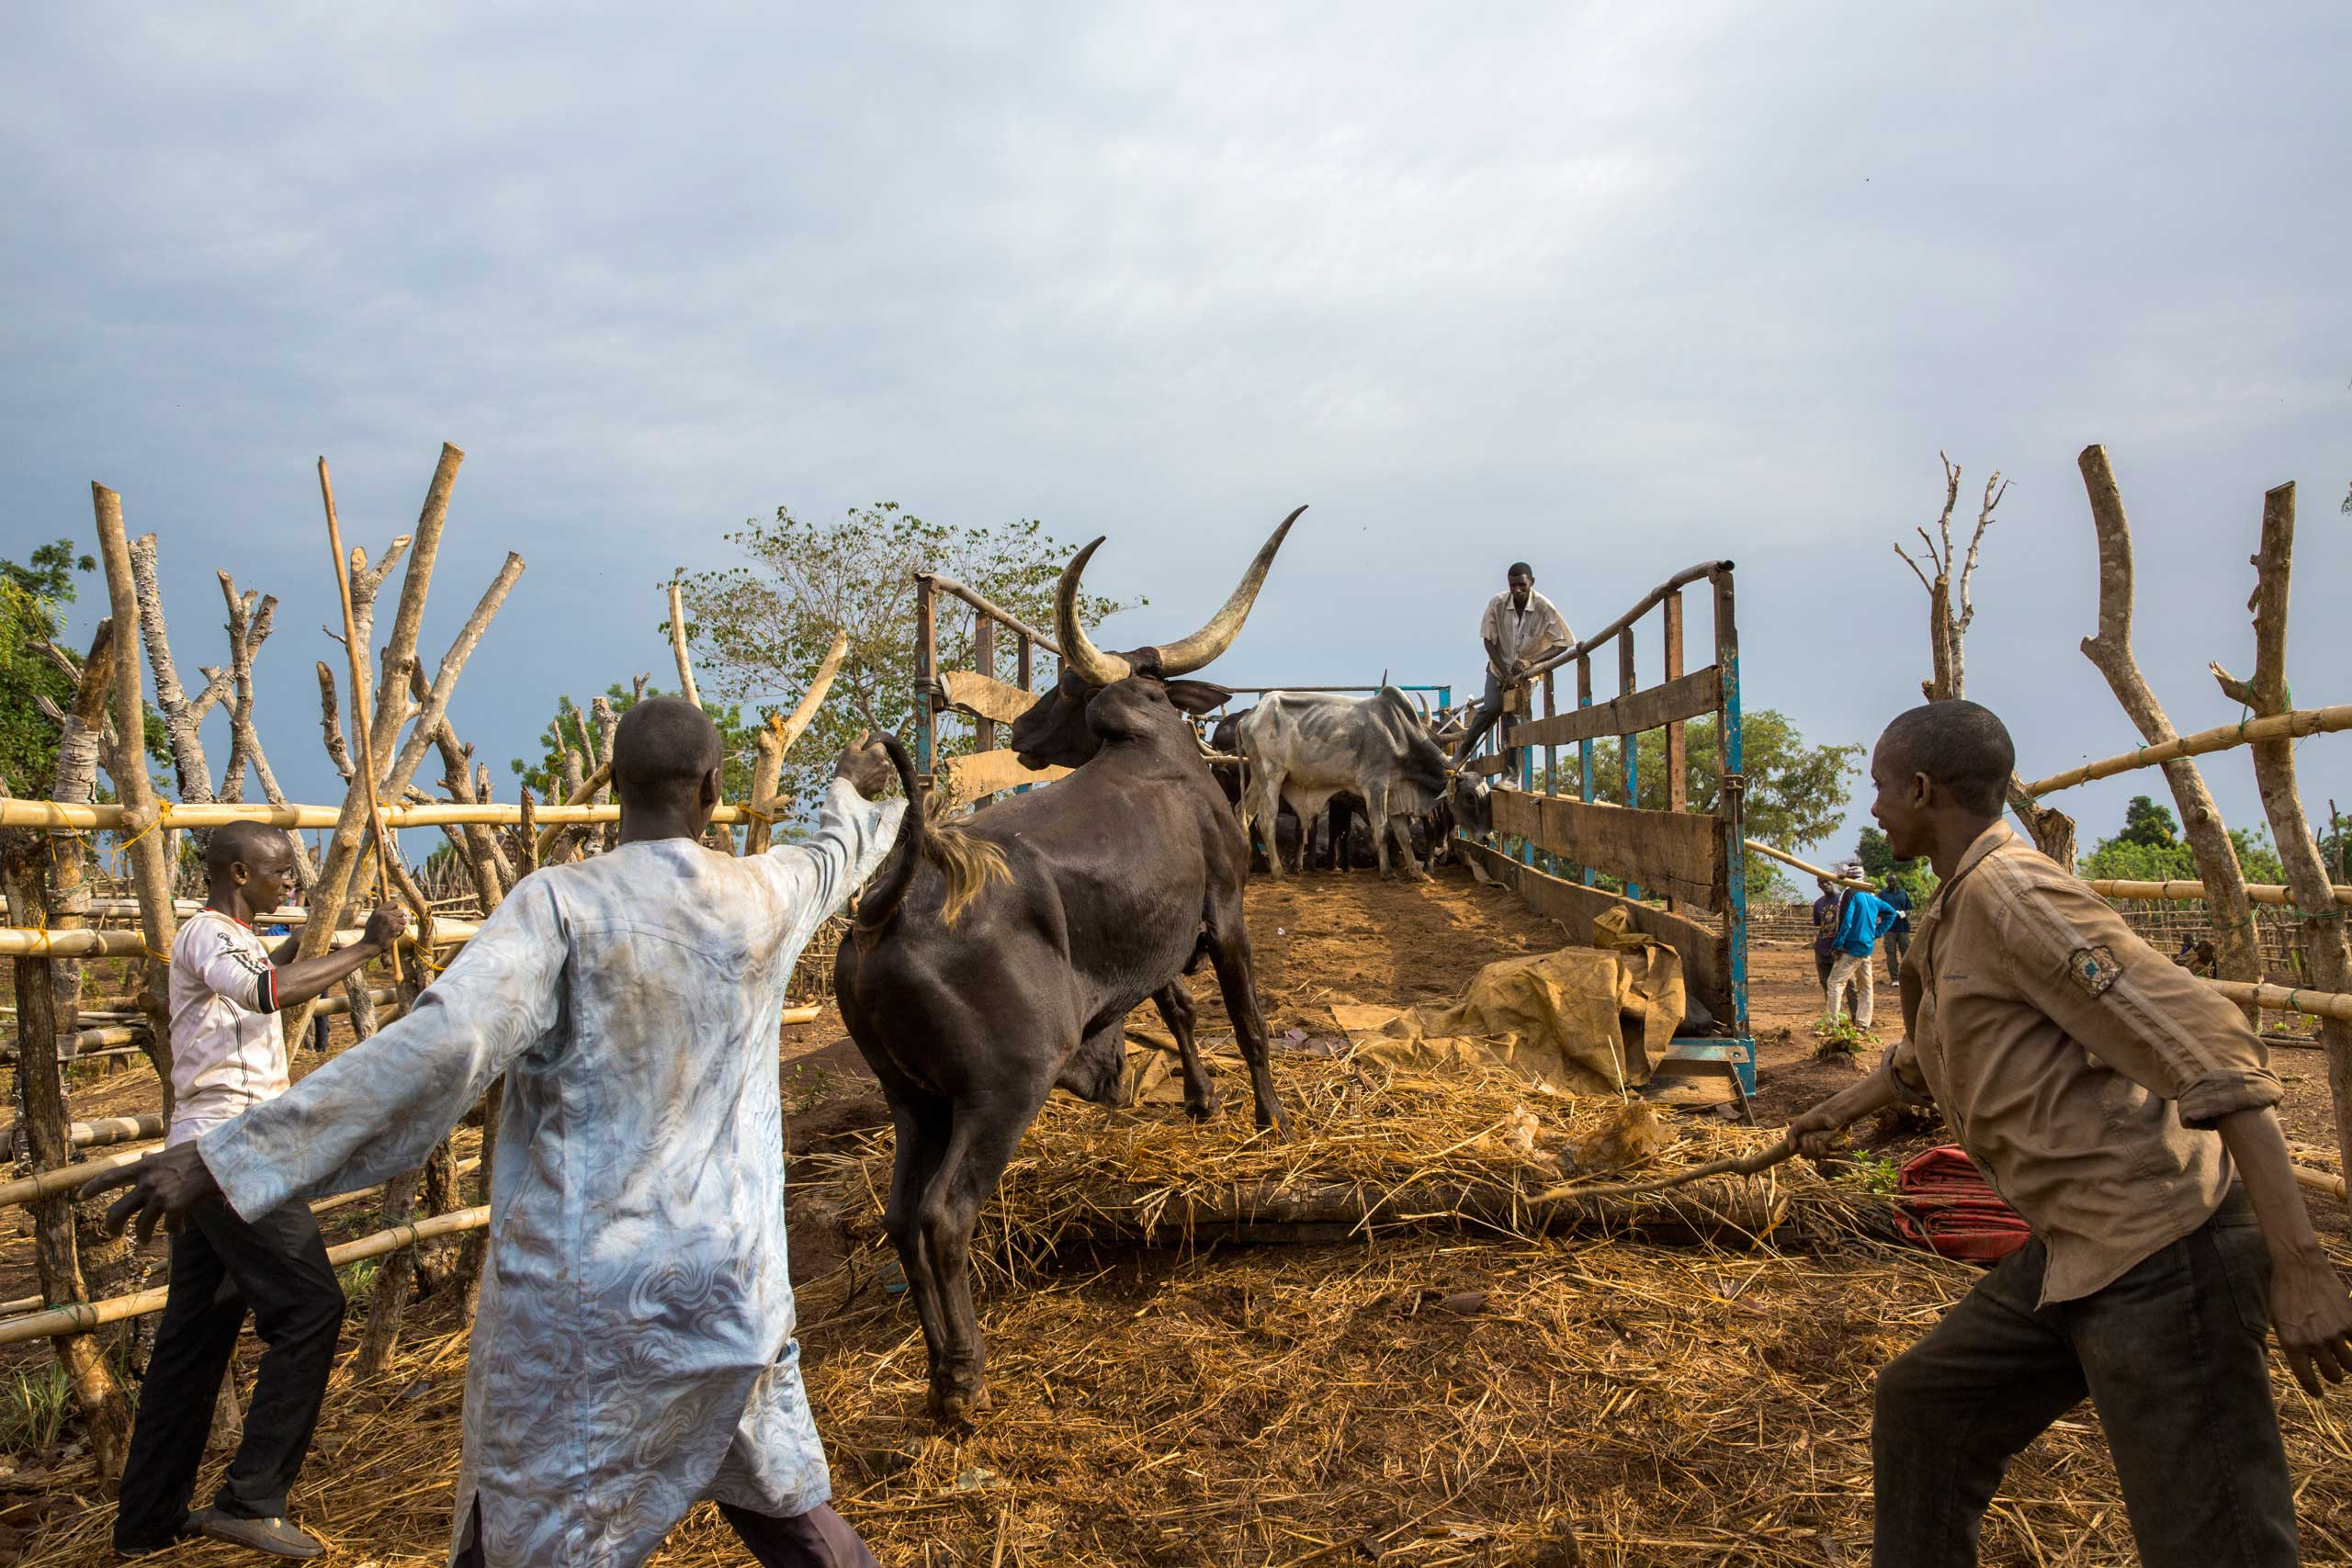 Men are loading a truck with cows in Bambari, Central African Republic. Around 200 to 800 cows are sent to Bangui every week and ex-Seleka leader Ali Daras collects a  tax  of $30 on each cow  to provide security.